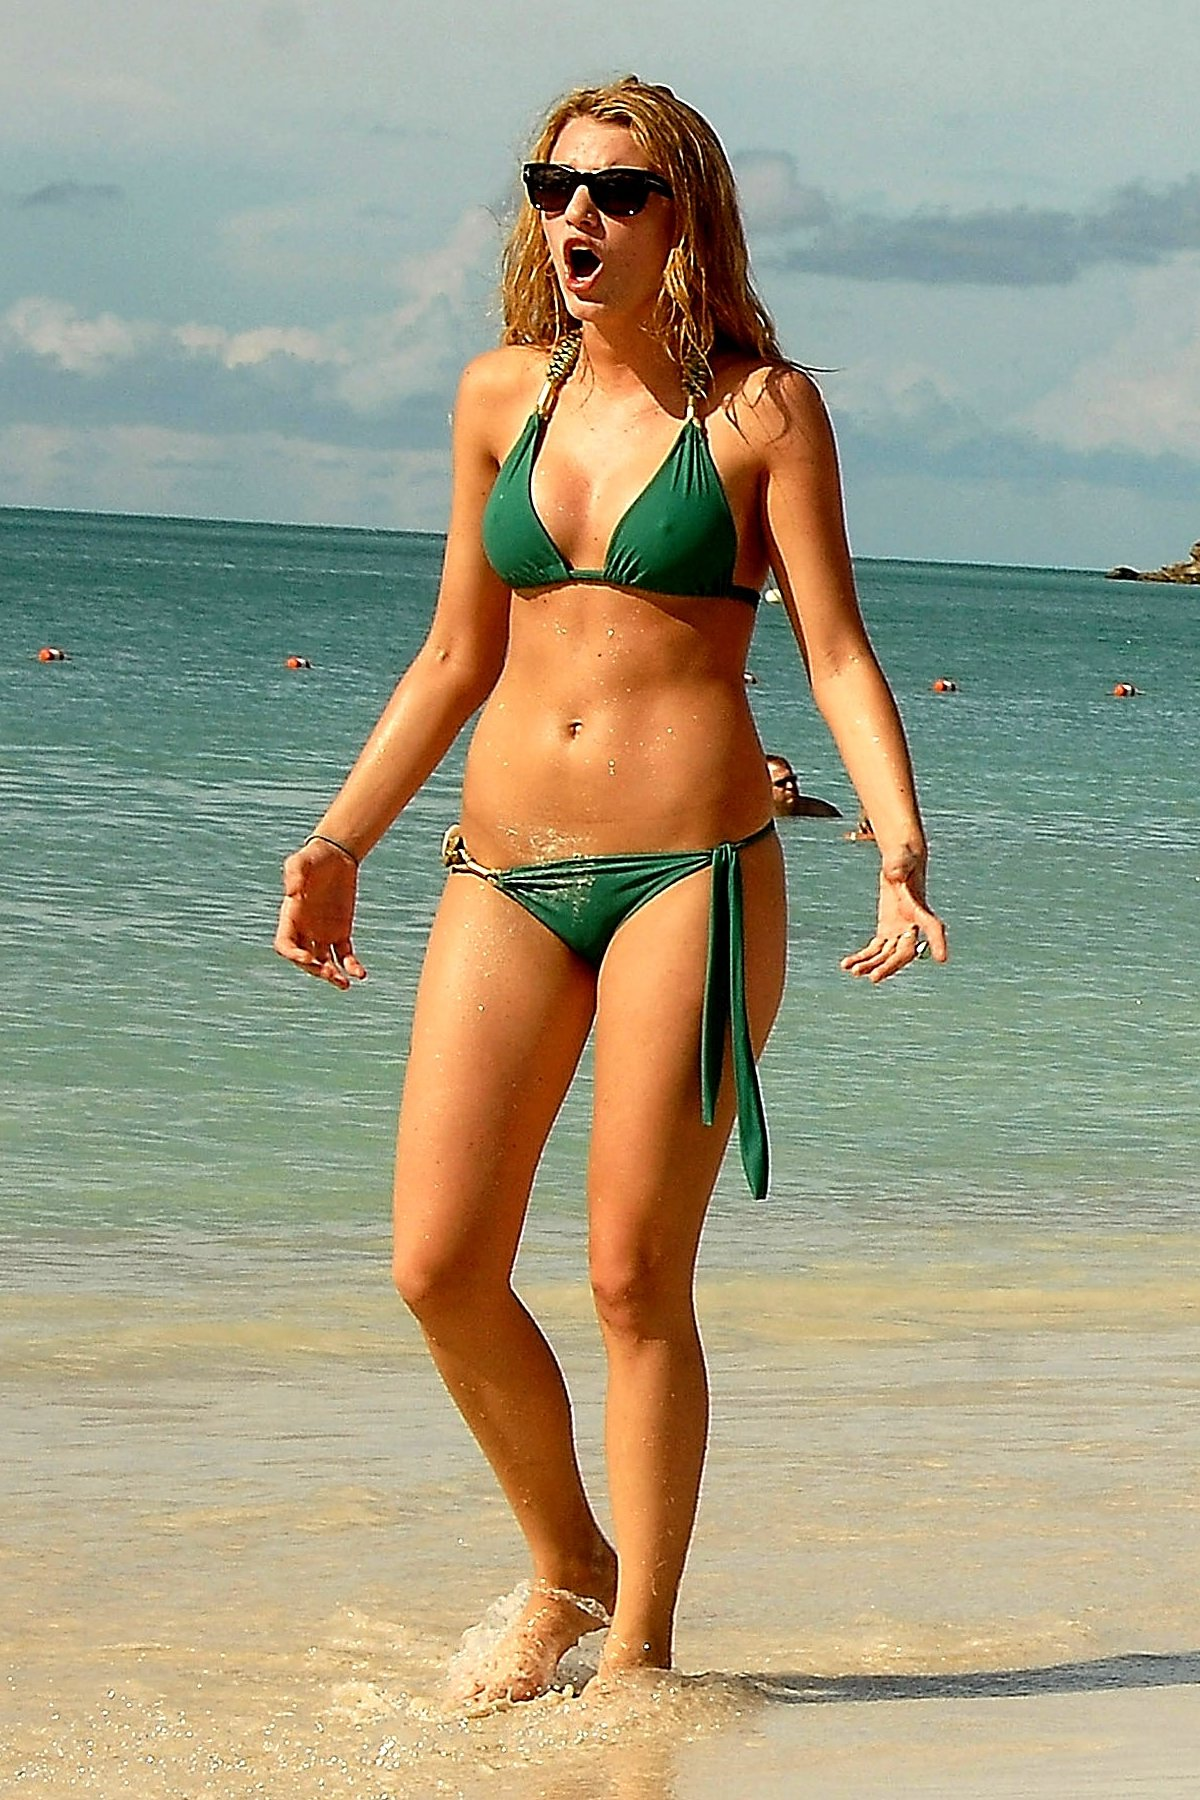 Blake-Lively-Hot-bikini